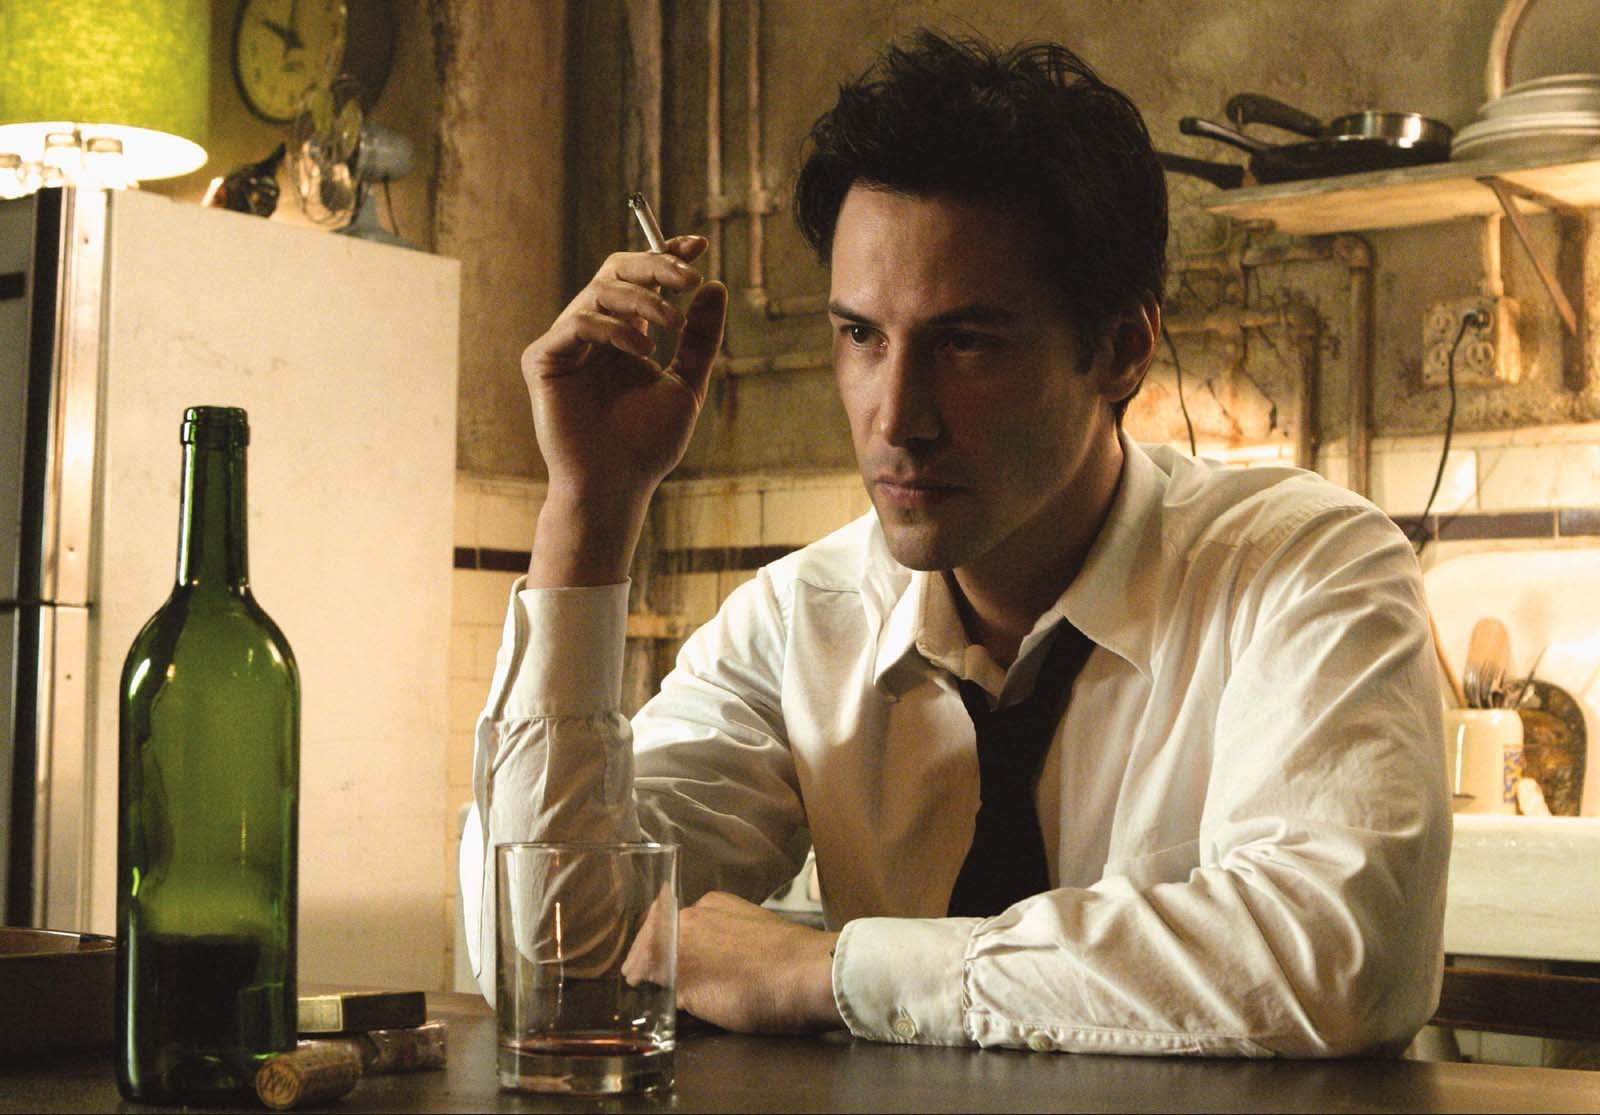 keanu reeves desktop pic images photos hd wallpapers downlaod